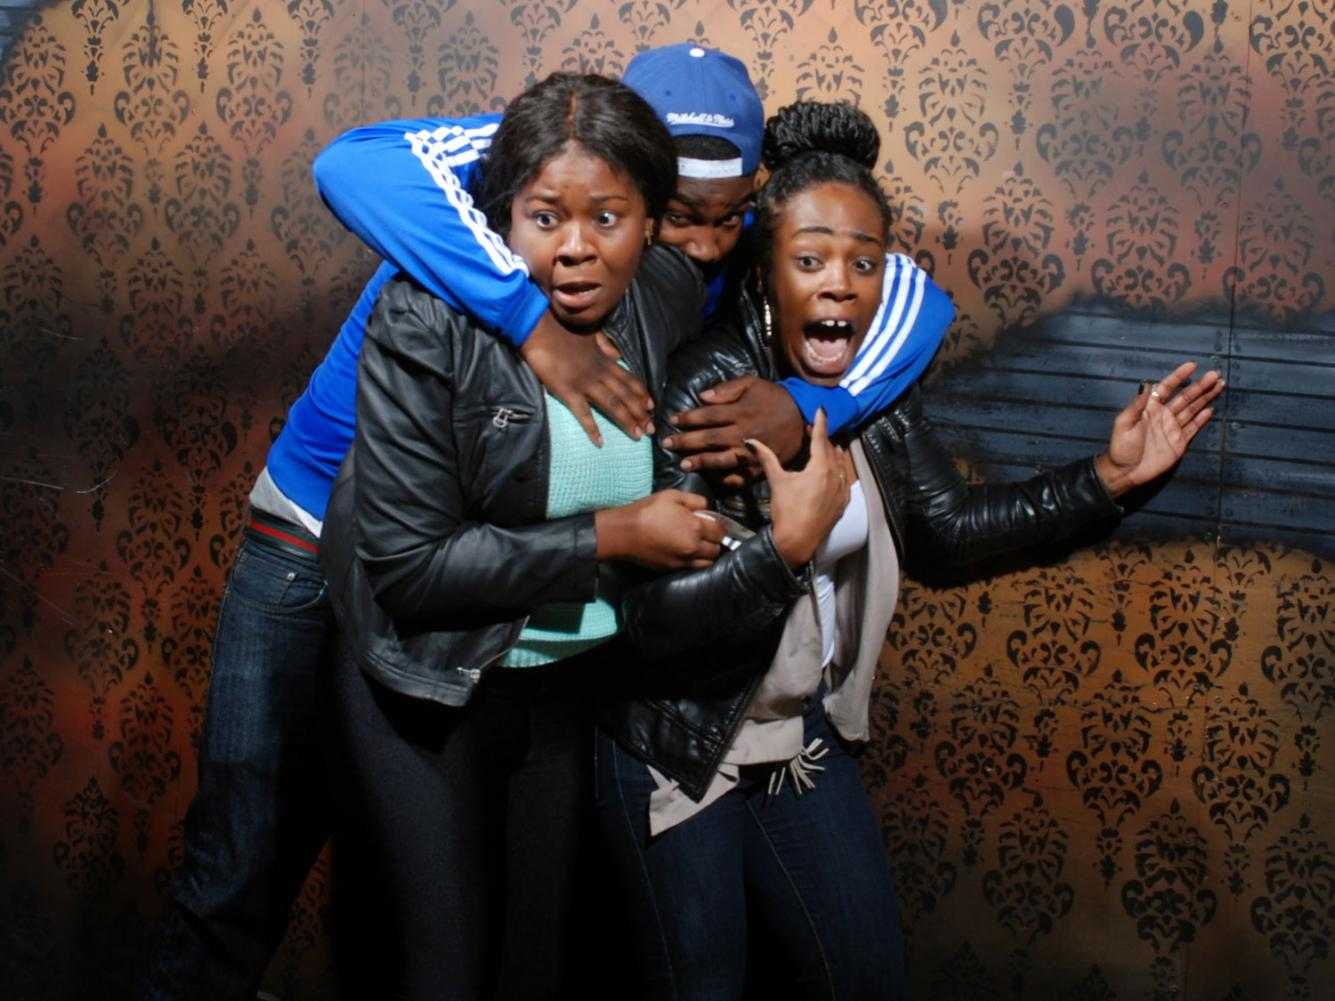 Nightmares Fear Factory Top 40 September 2013 pic0139